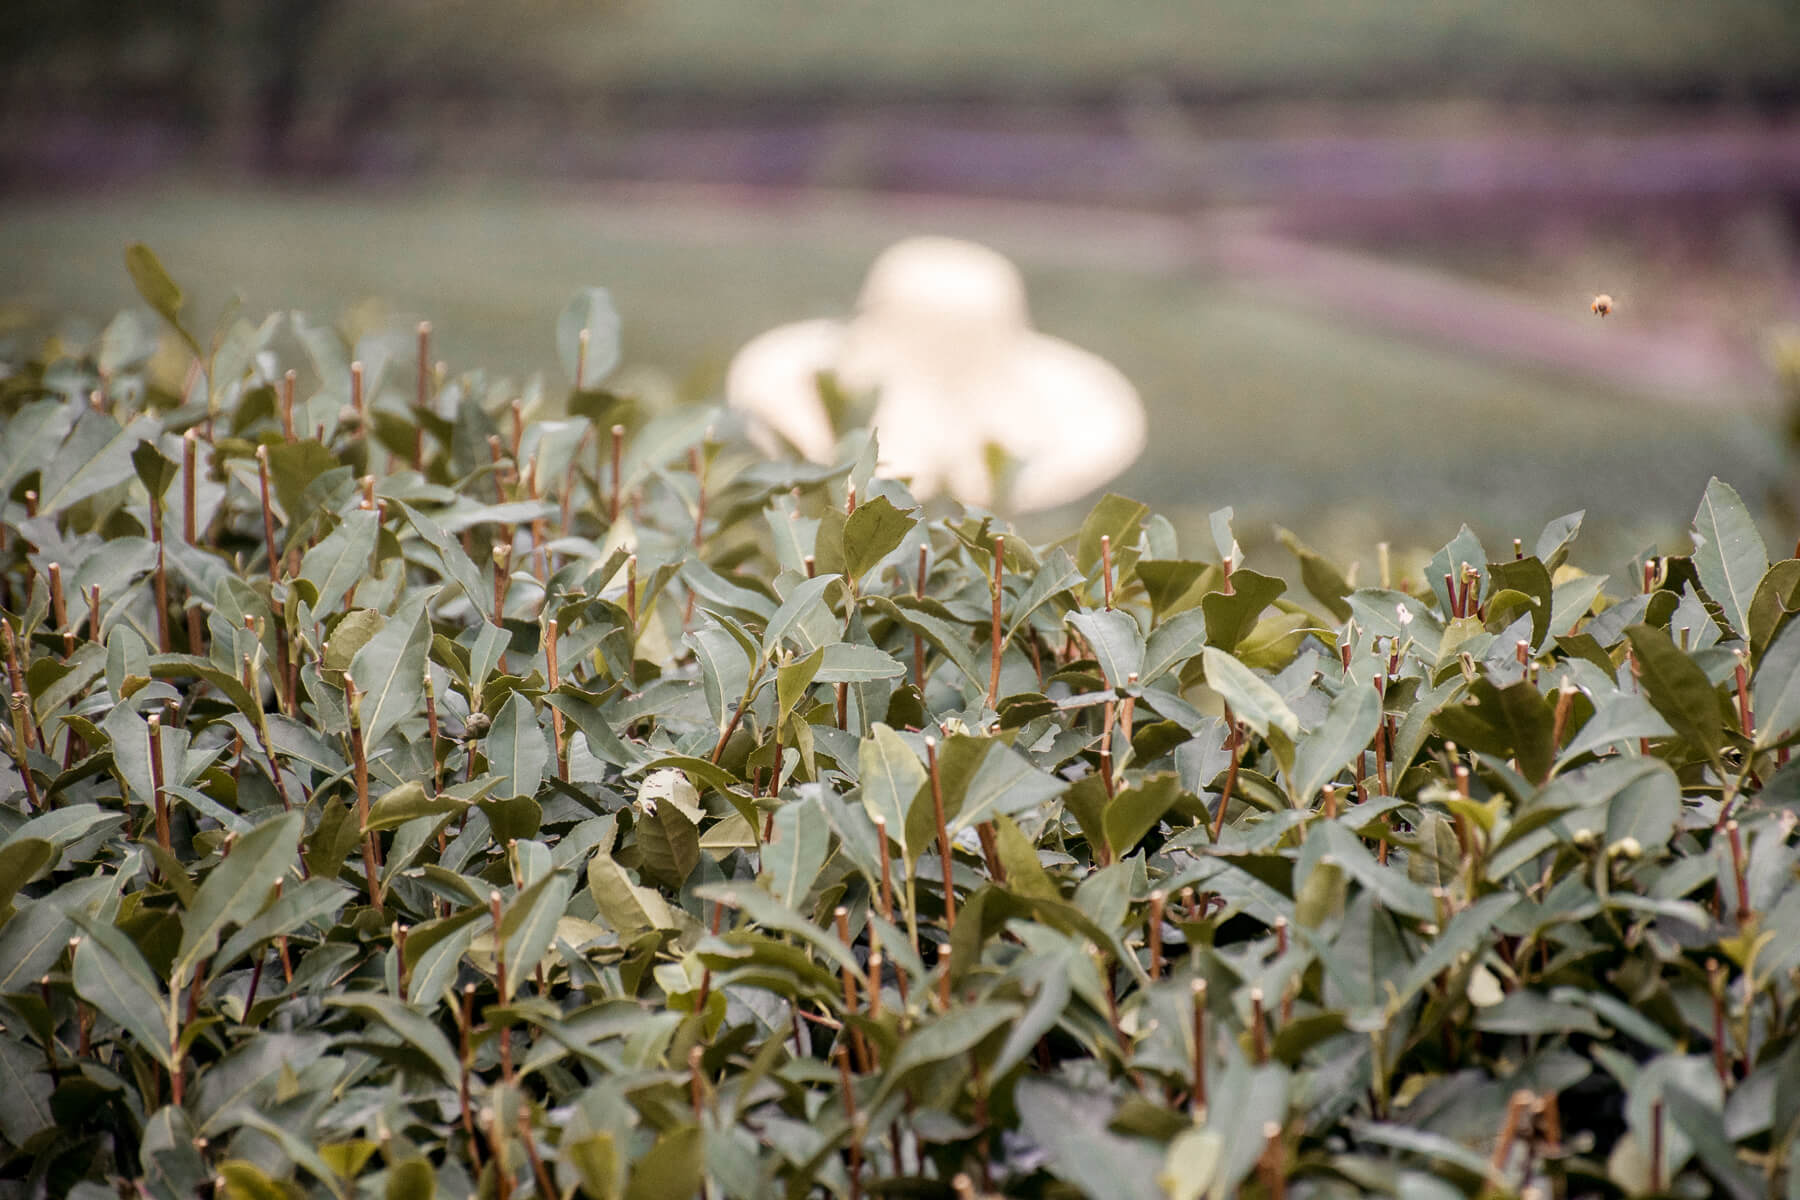 Focus on a green tea plant, with a bee flying above and an unfocused hat in the background